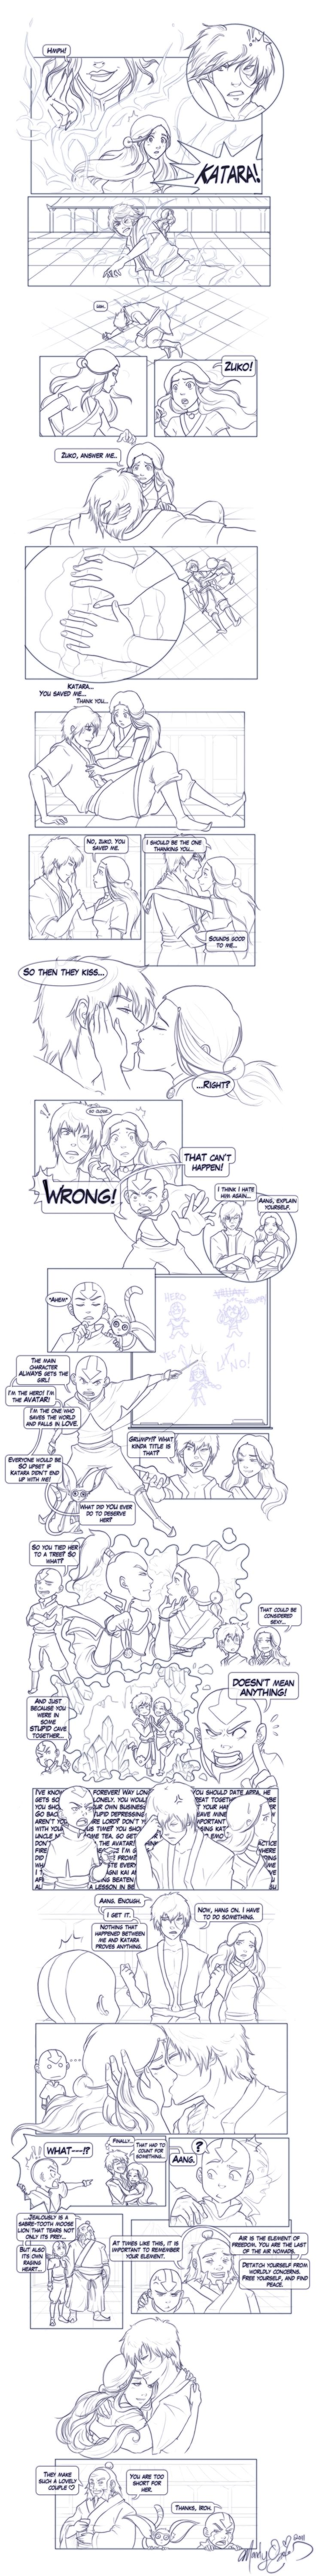 I'm not a Zutara fan but this is FUNNY!  The End - Comic by Mandy-Mo.deviantart.com on @deviantART